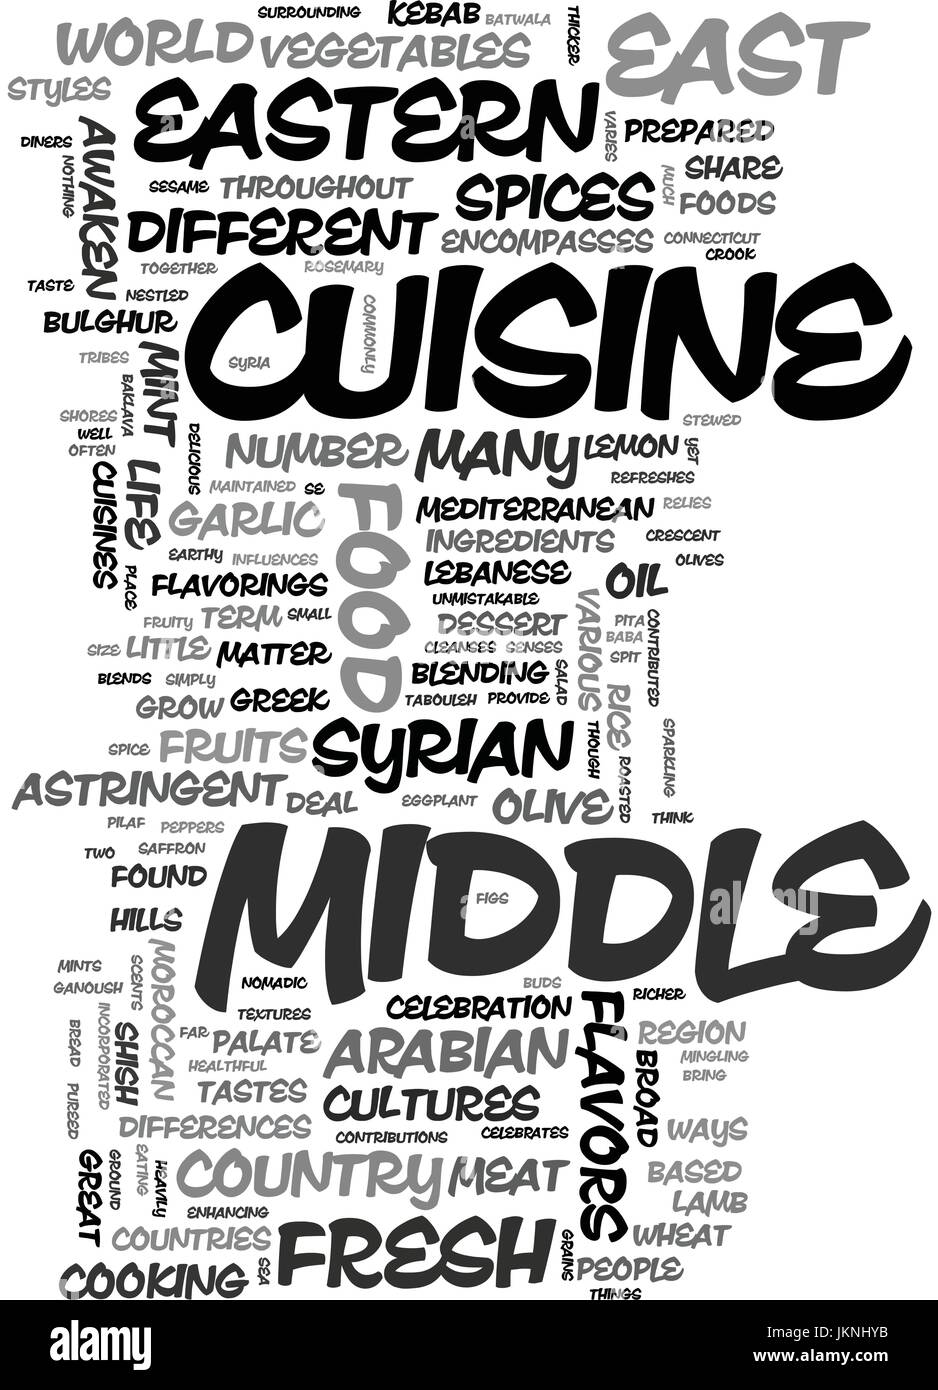 MIDDLE EASTERN CUISINE Text Background Word Cloud Concept - Stock Vector